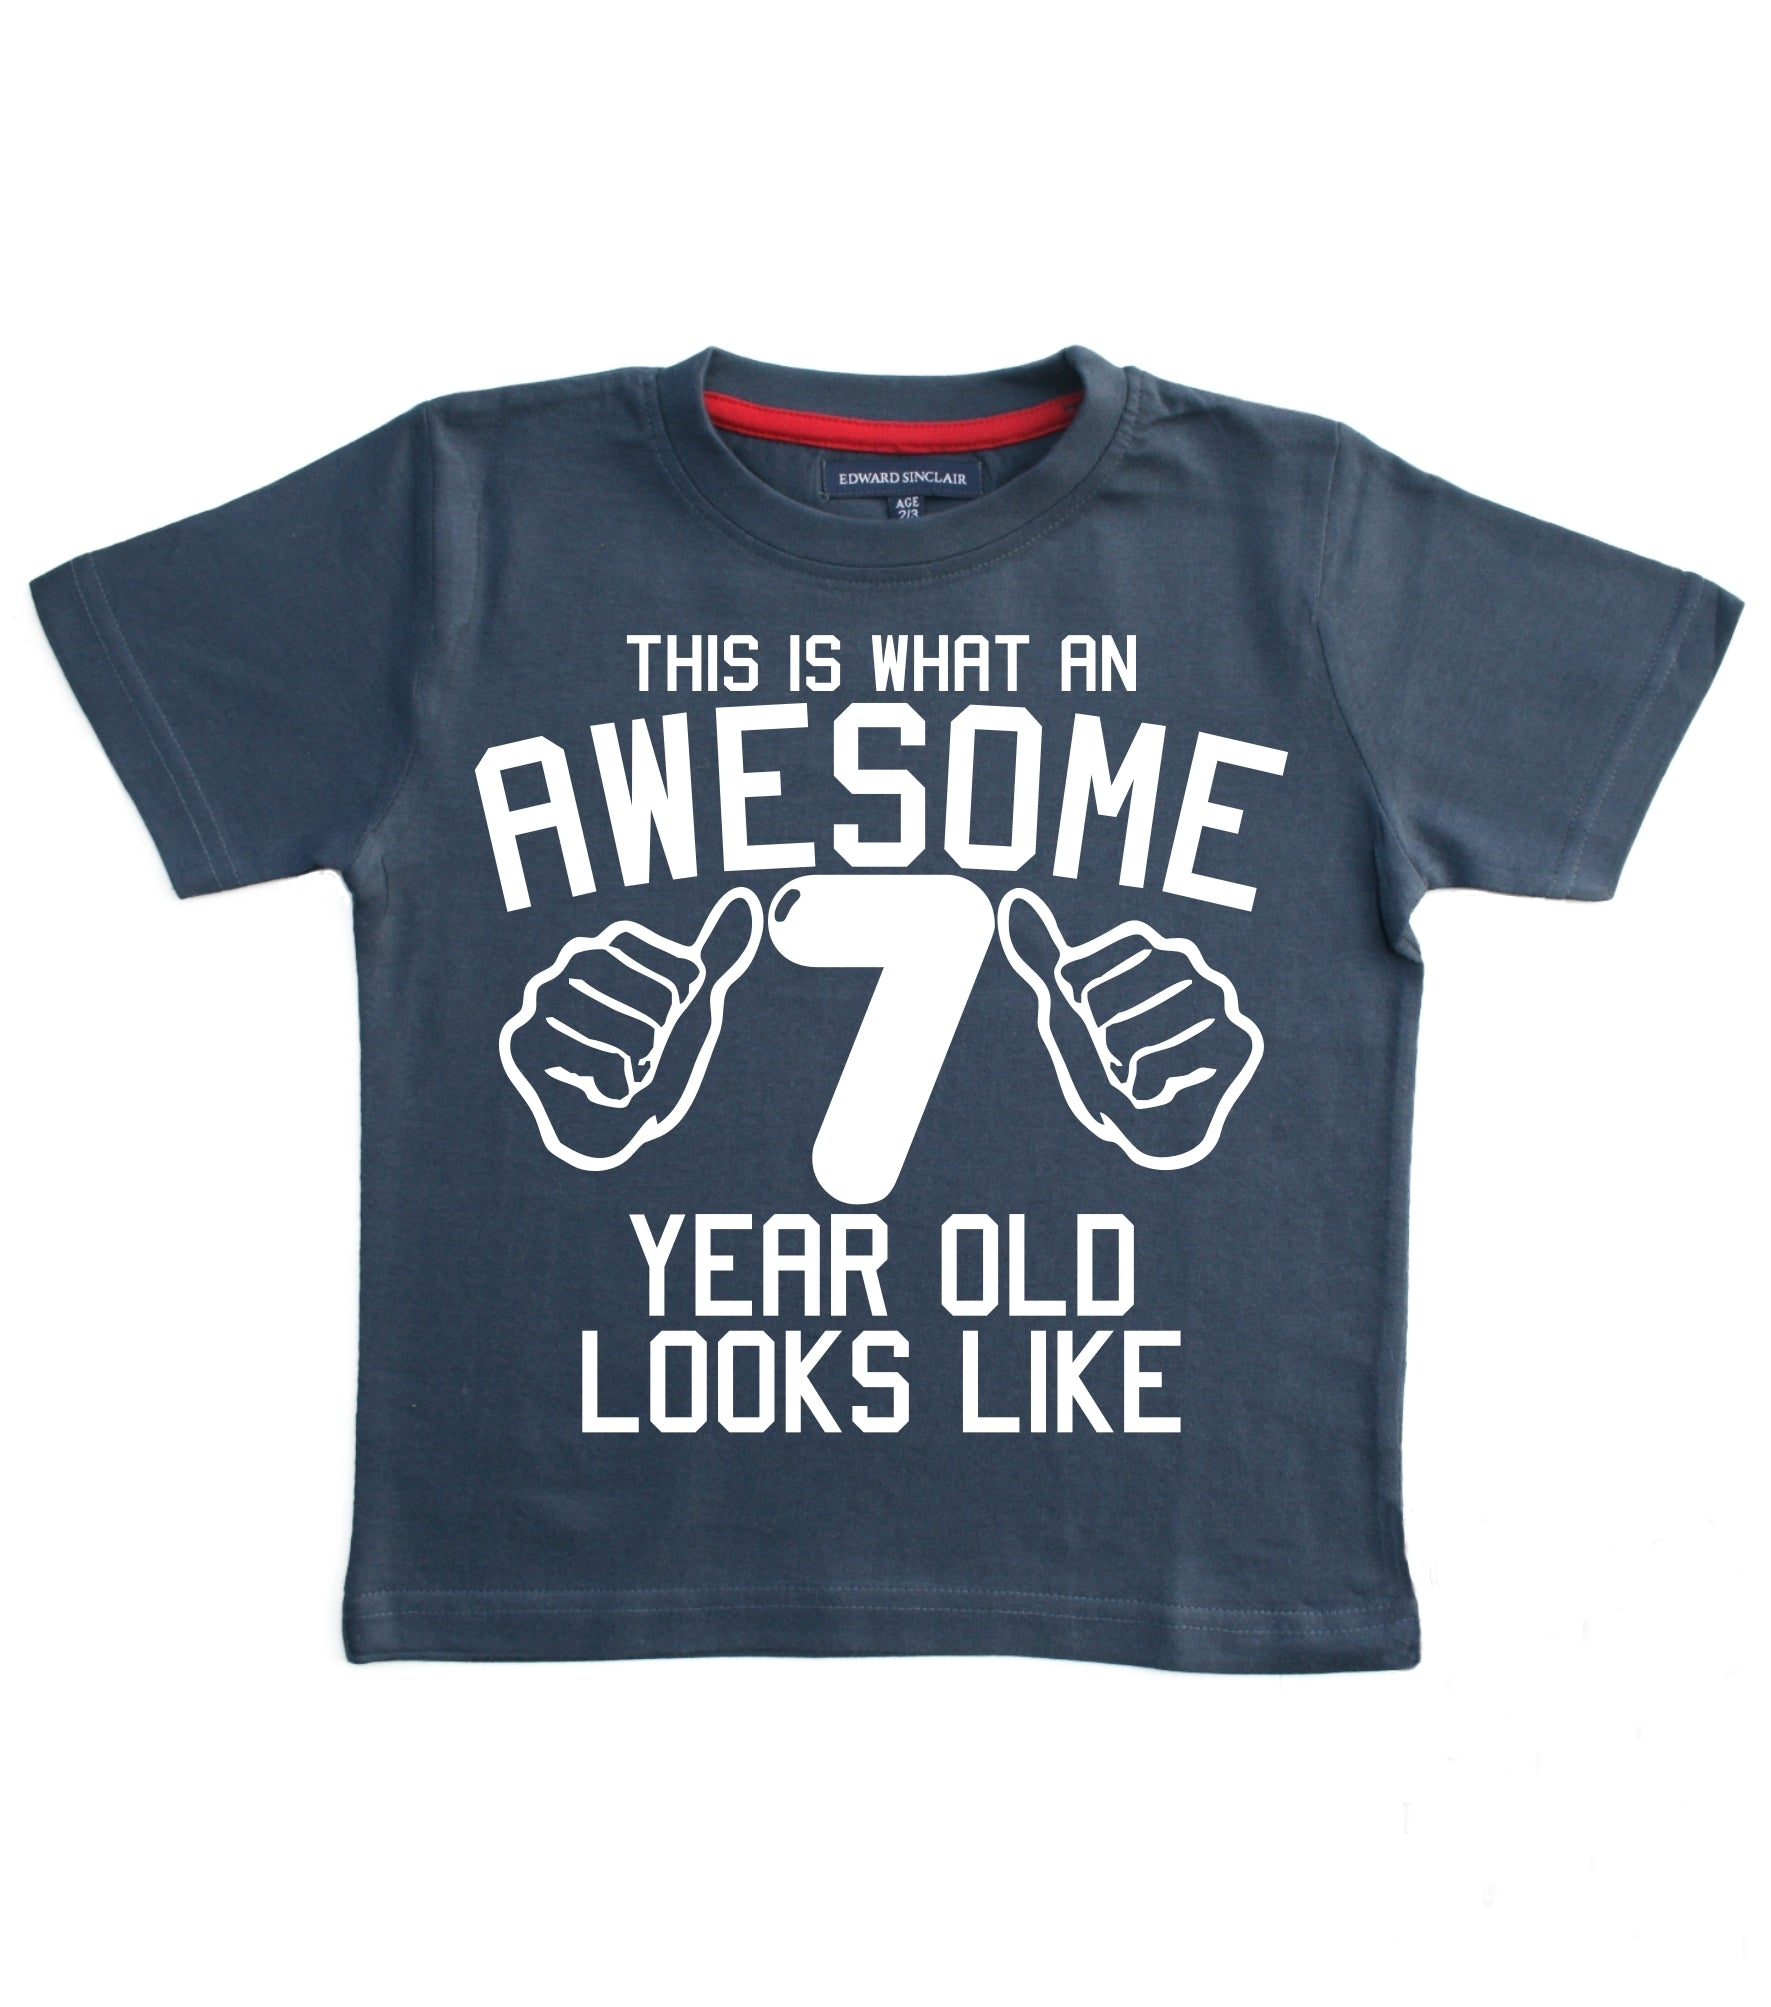 This What an Awesome 7 Year Old Looks Like Children's T-shirt